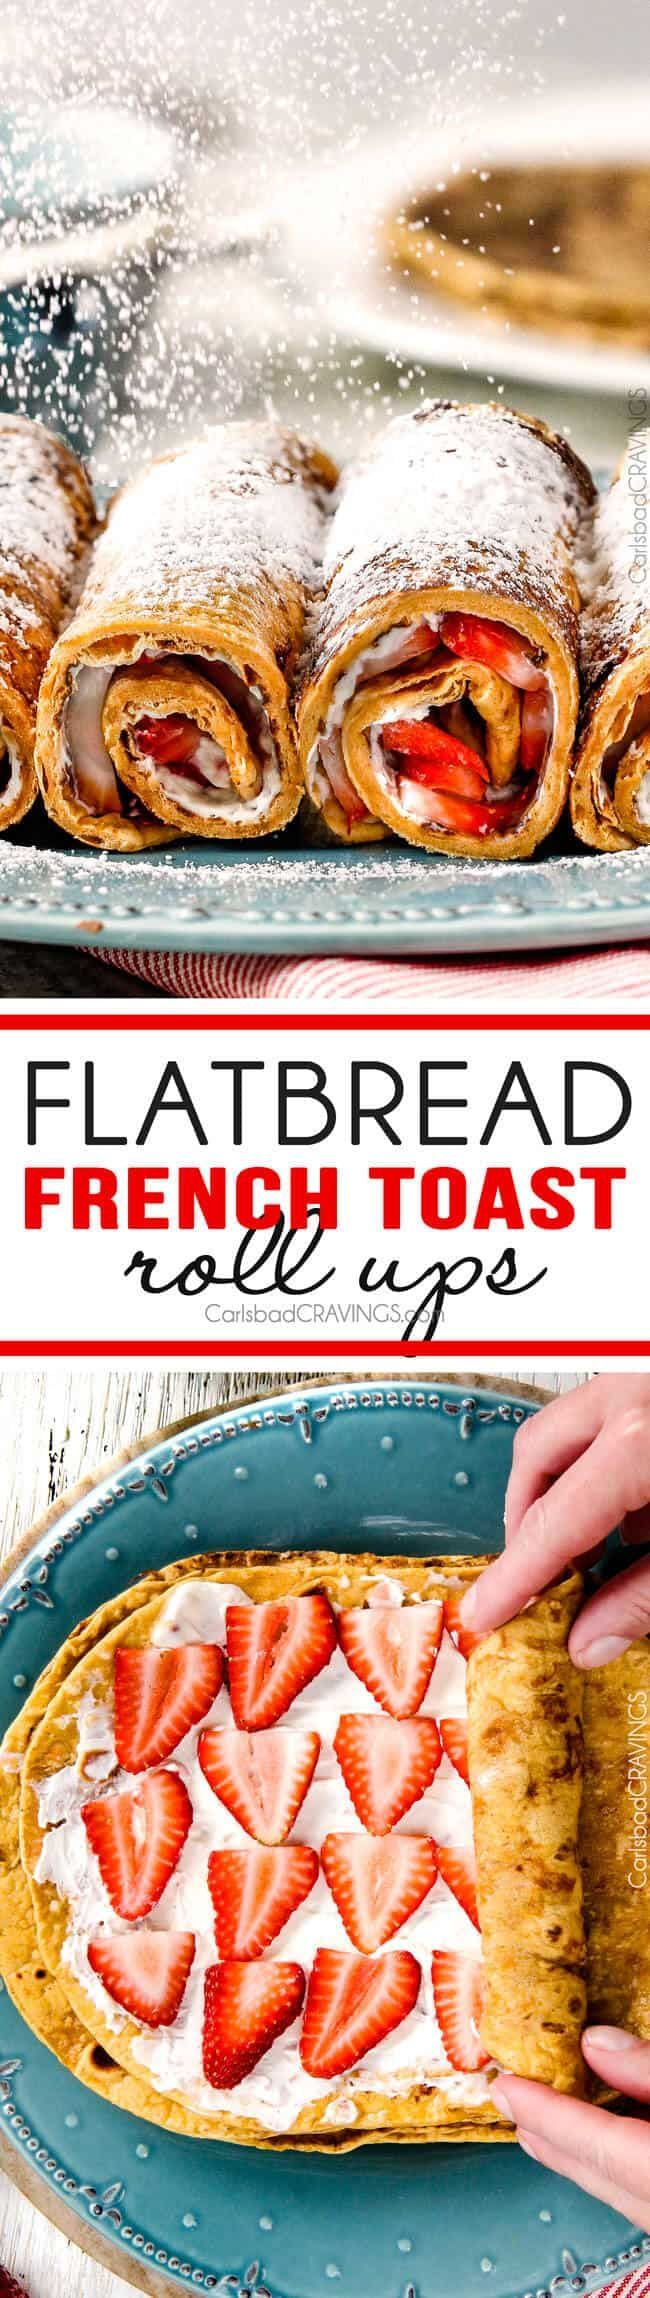 Flatbread French Toast Roll Ups or French Toast Pinwheels - Carlsbad Cravings #frenchtoastrollups